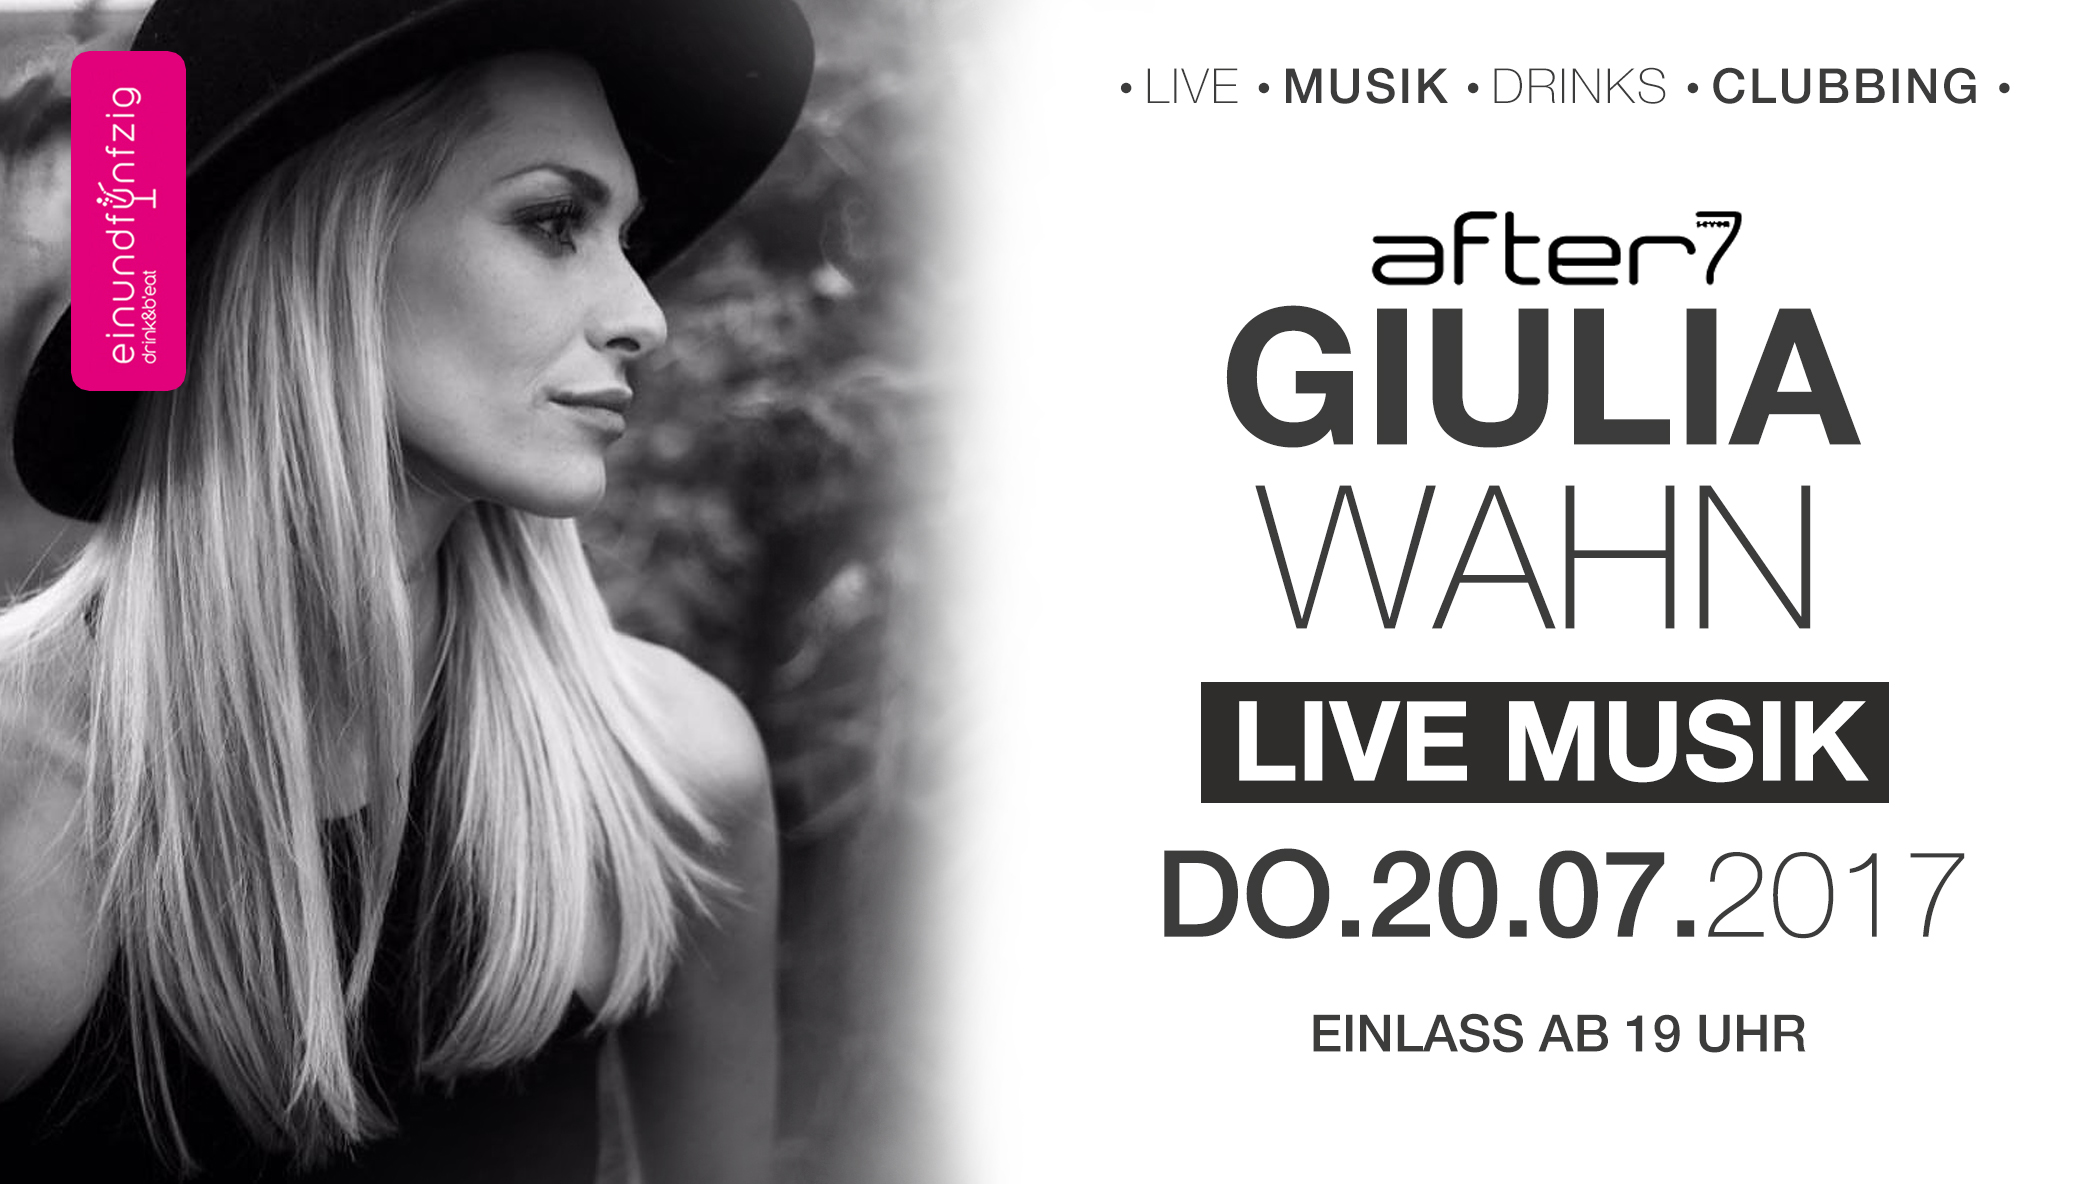 20.07.17 – Guilia Wahn live @after7